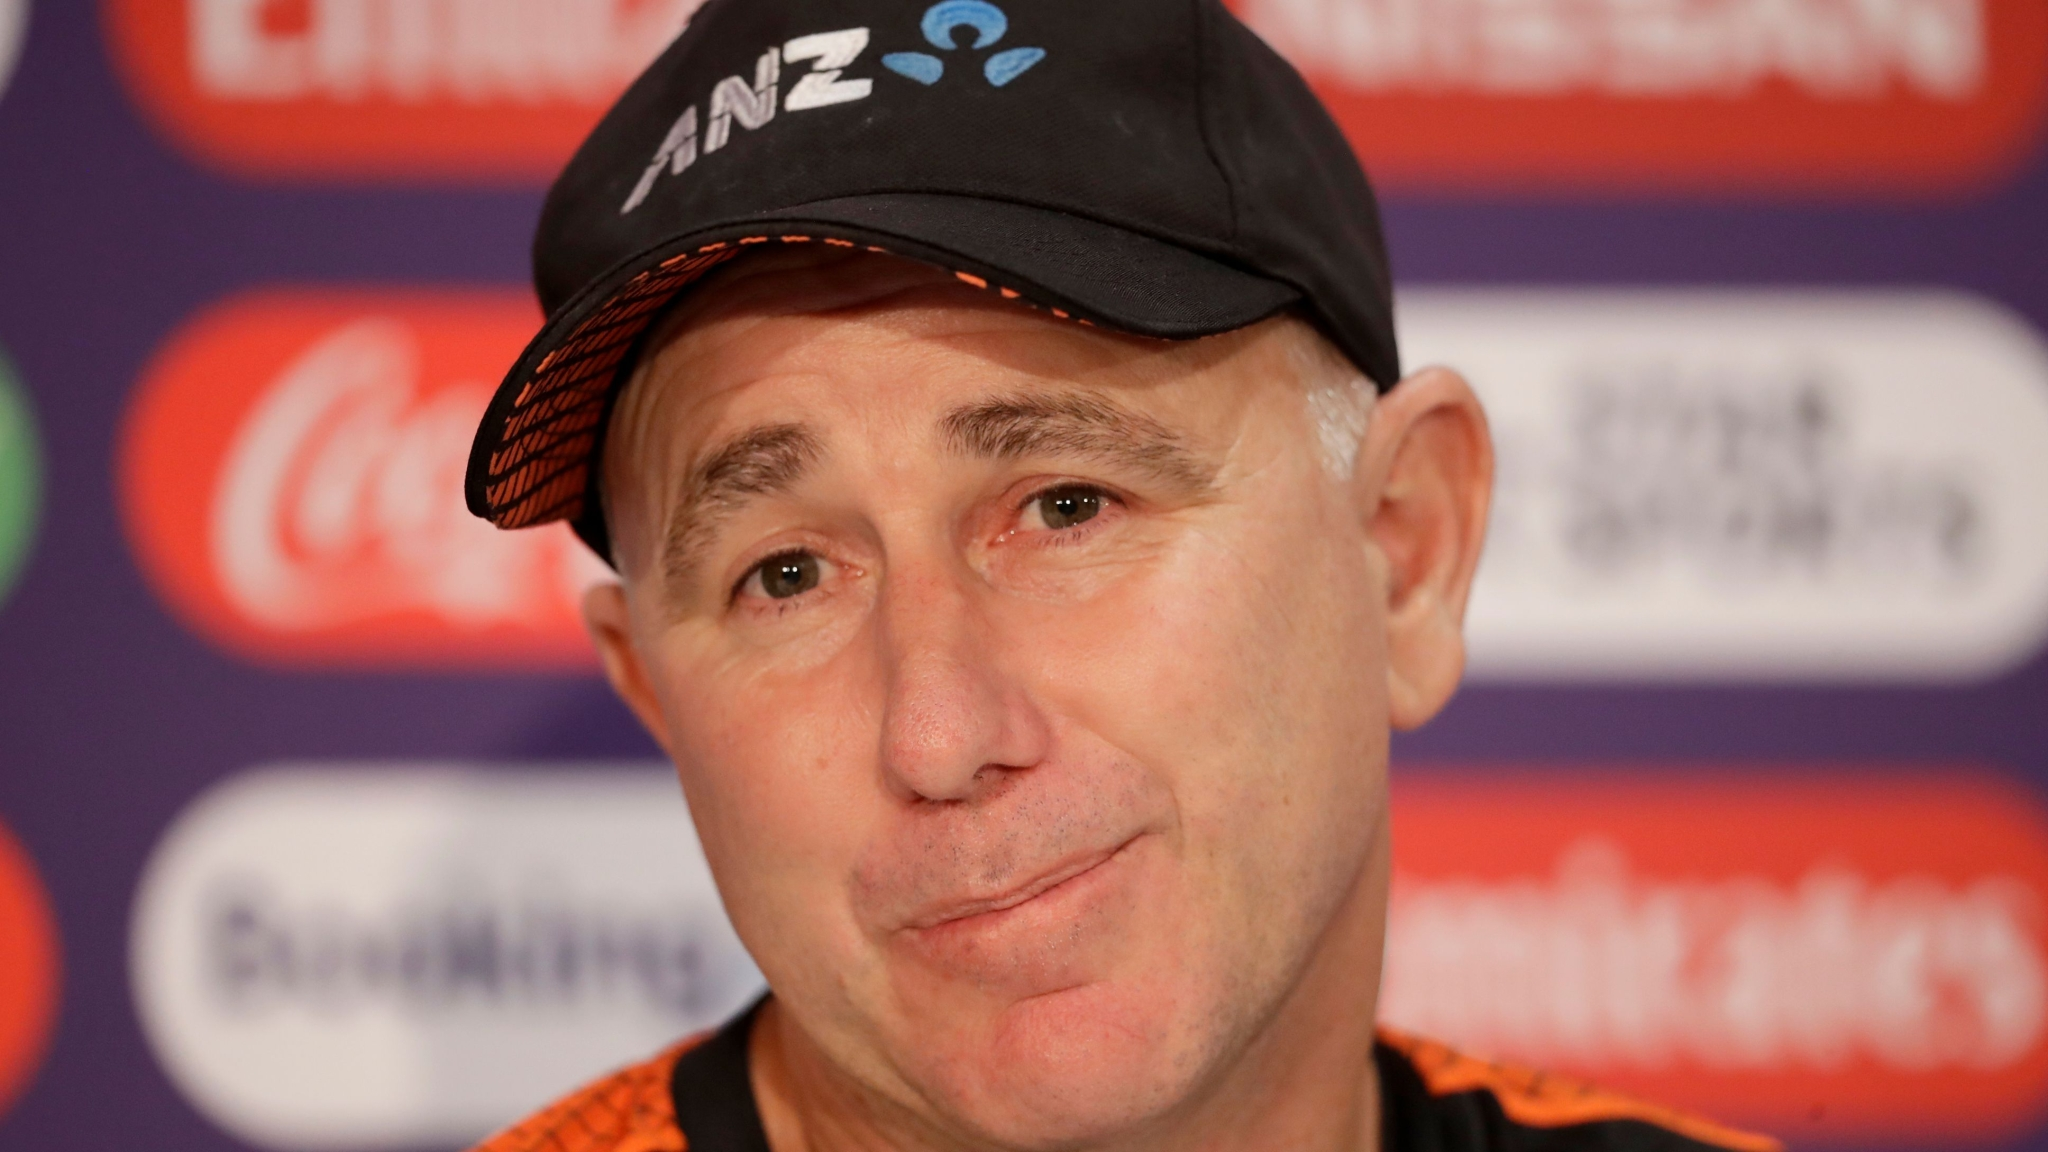 New Zealand Coach Feels World Cup Rules Need to be Reviewed